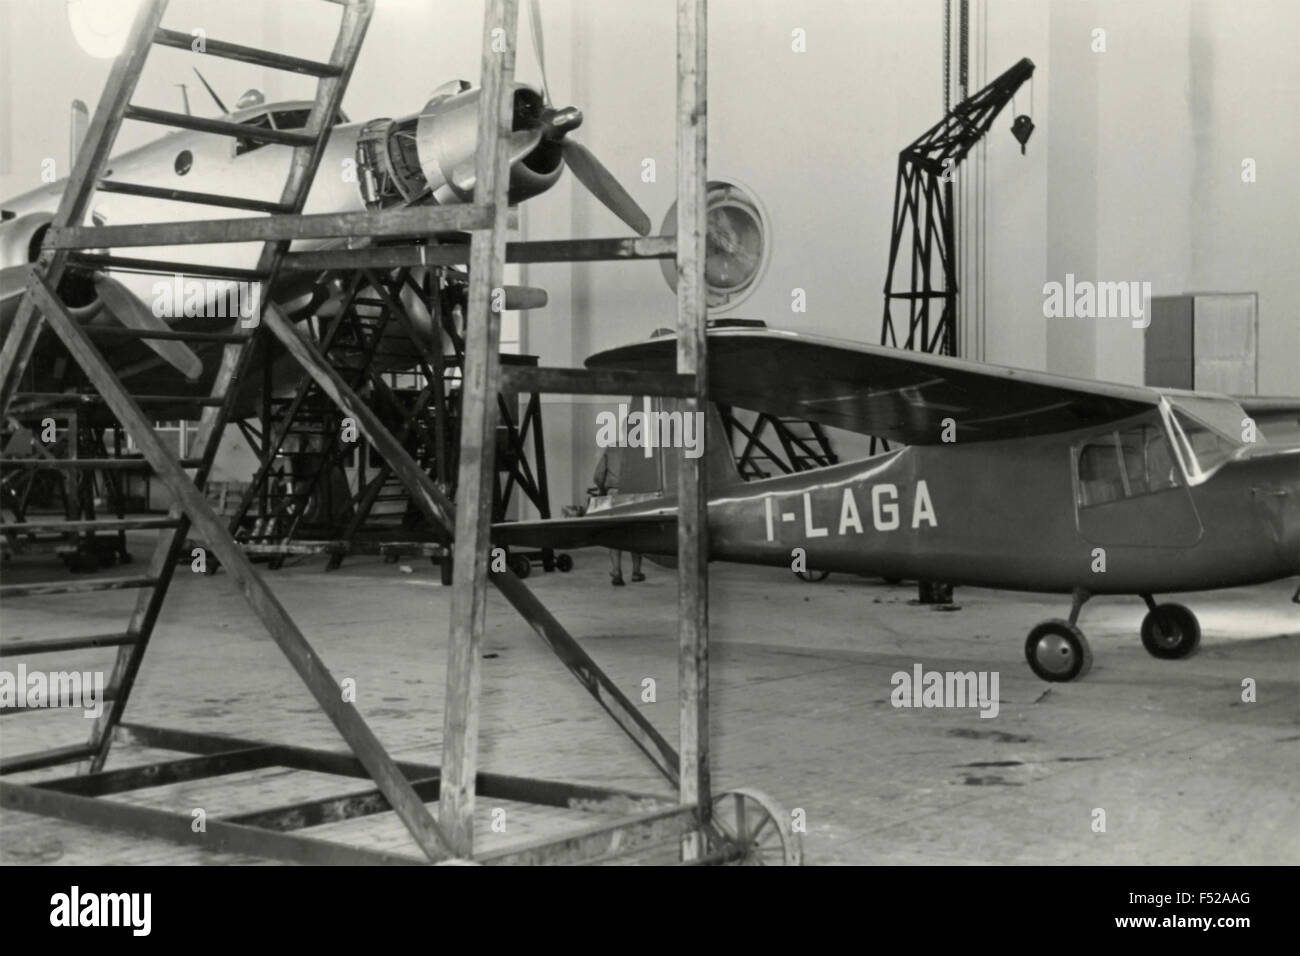 Aermacchi MB 308 light aircraft in the hangar , Italy - Stock Image